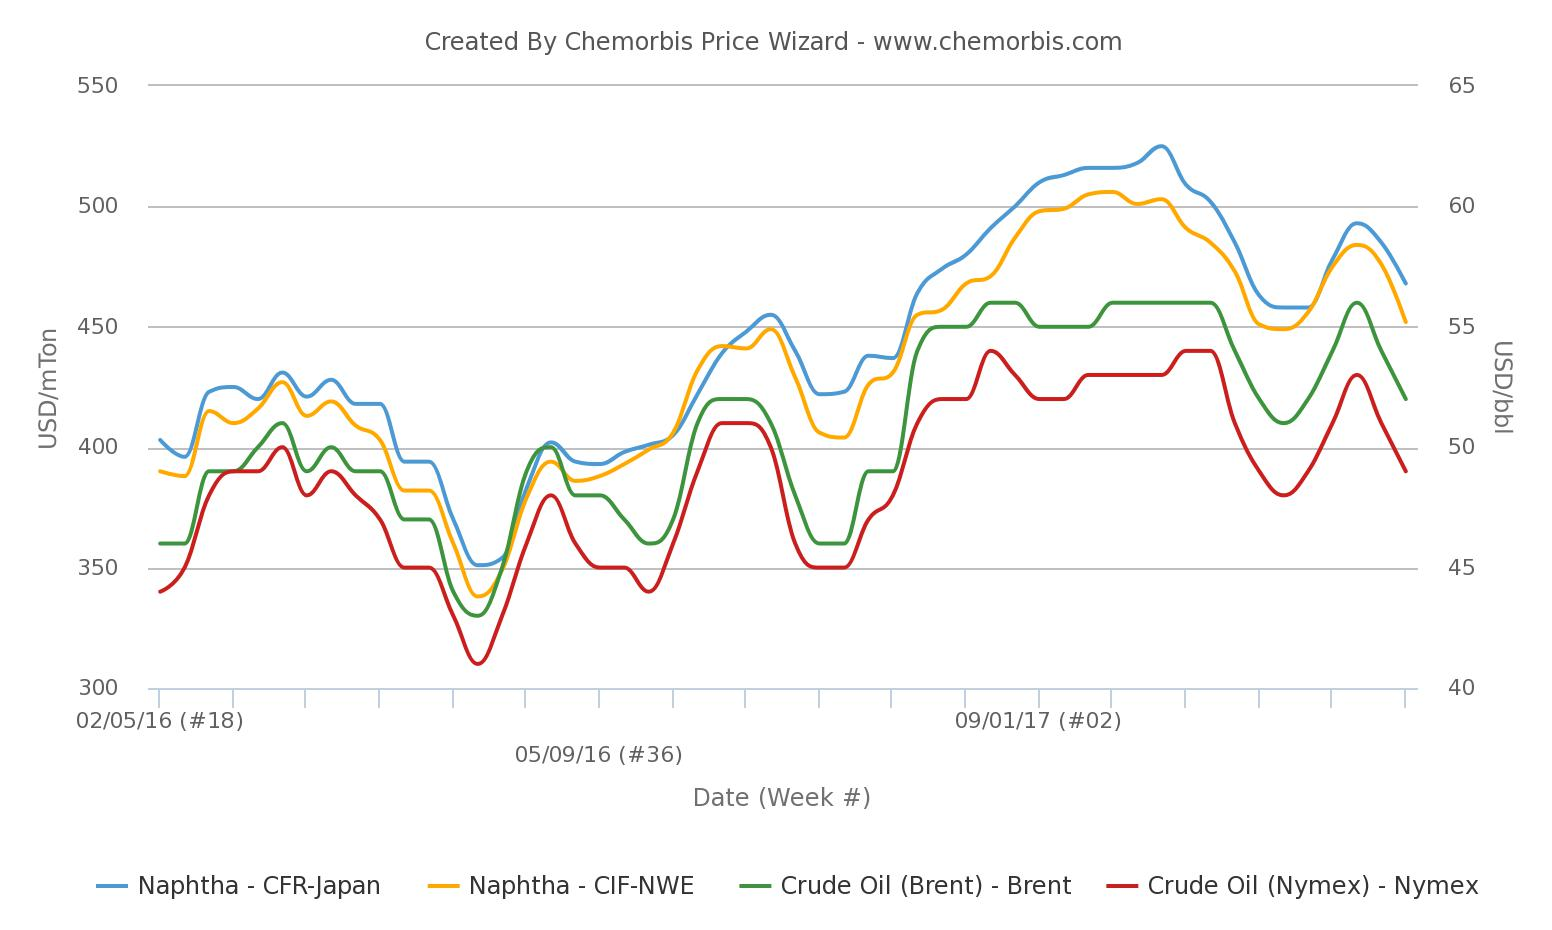 26 Apr – Spot propylene prices lose ground in global markets